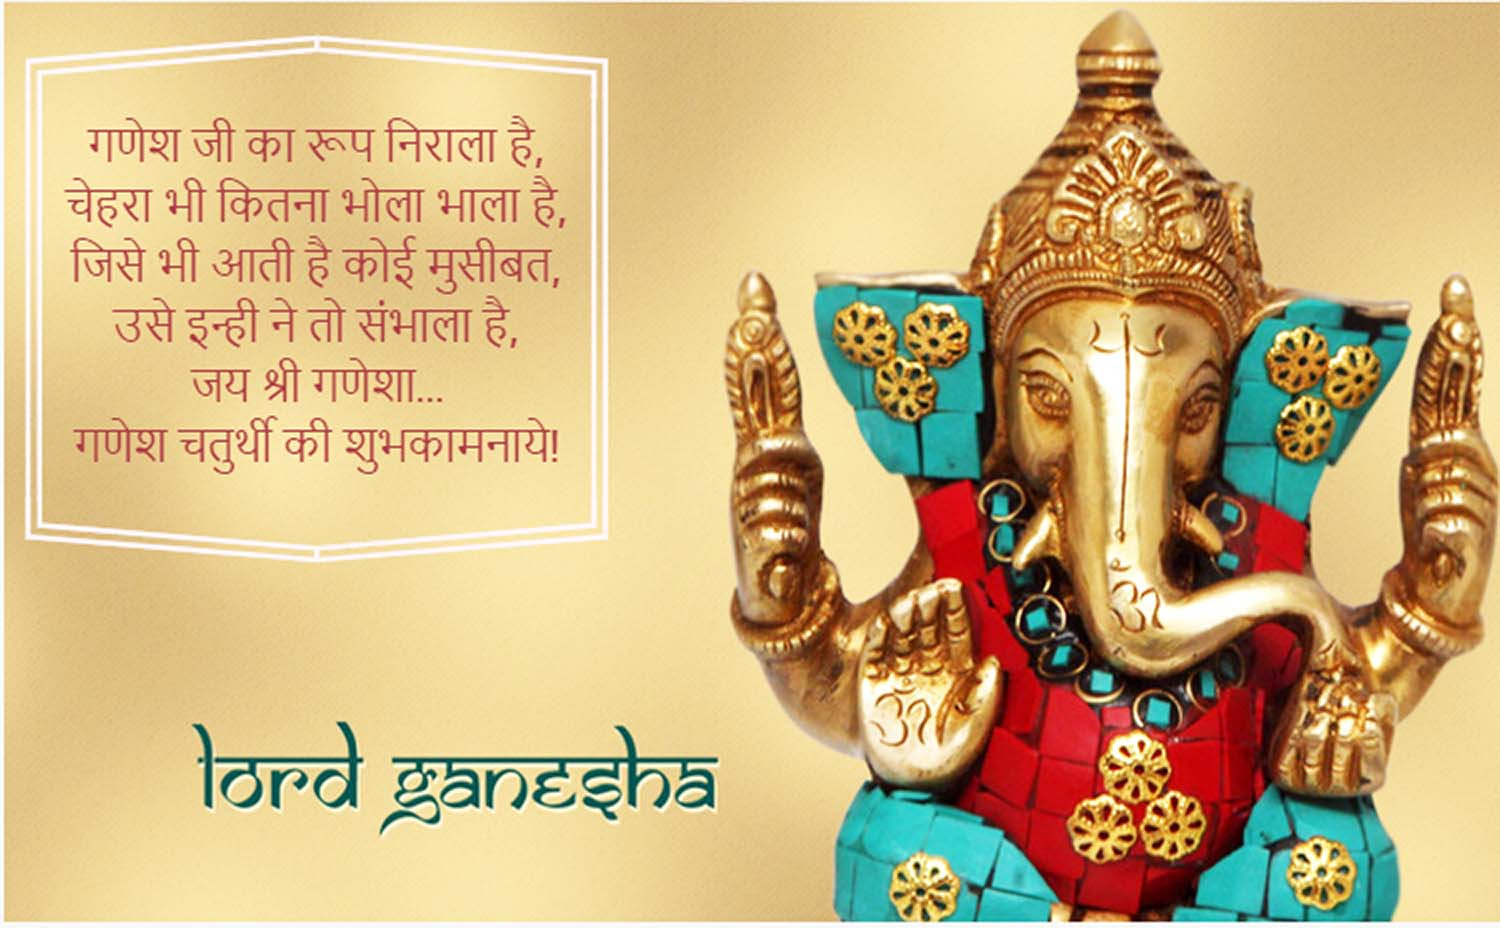 Happy ganesh chaturthi in hindi